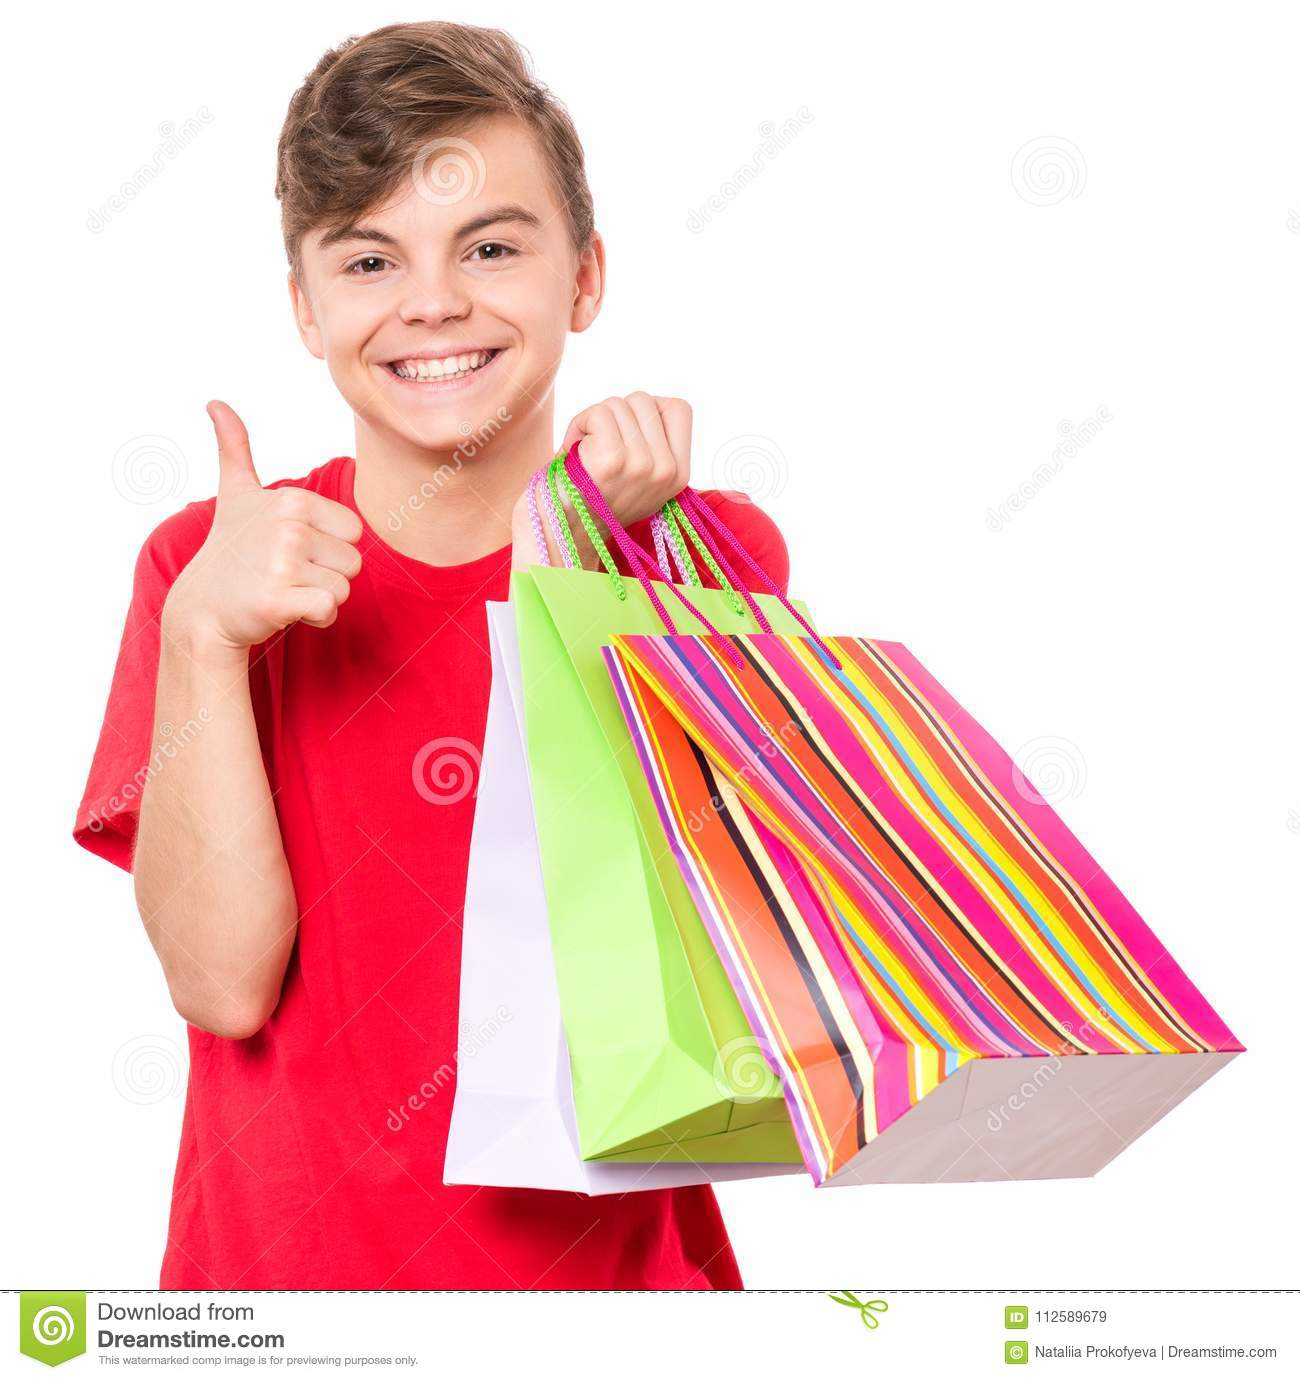 Teen Boy Christmas.Teen Boy Christmas Concept Stock Image Image Of Gesture